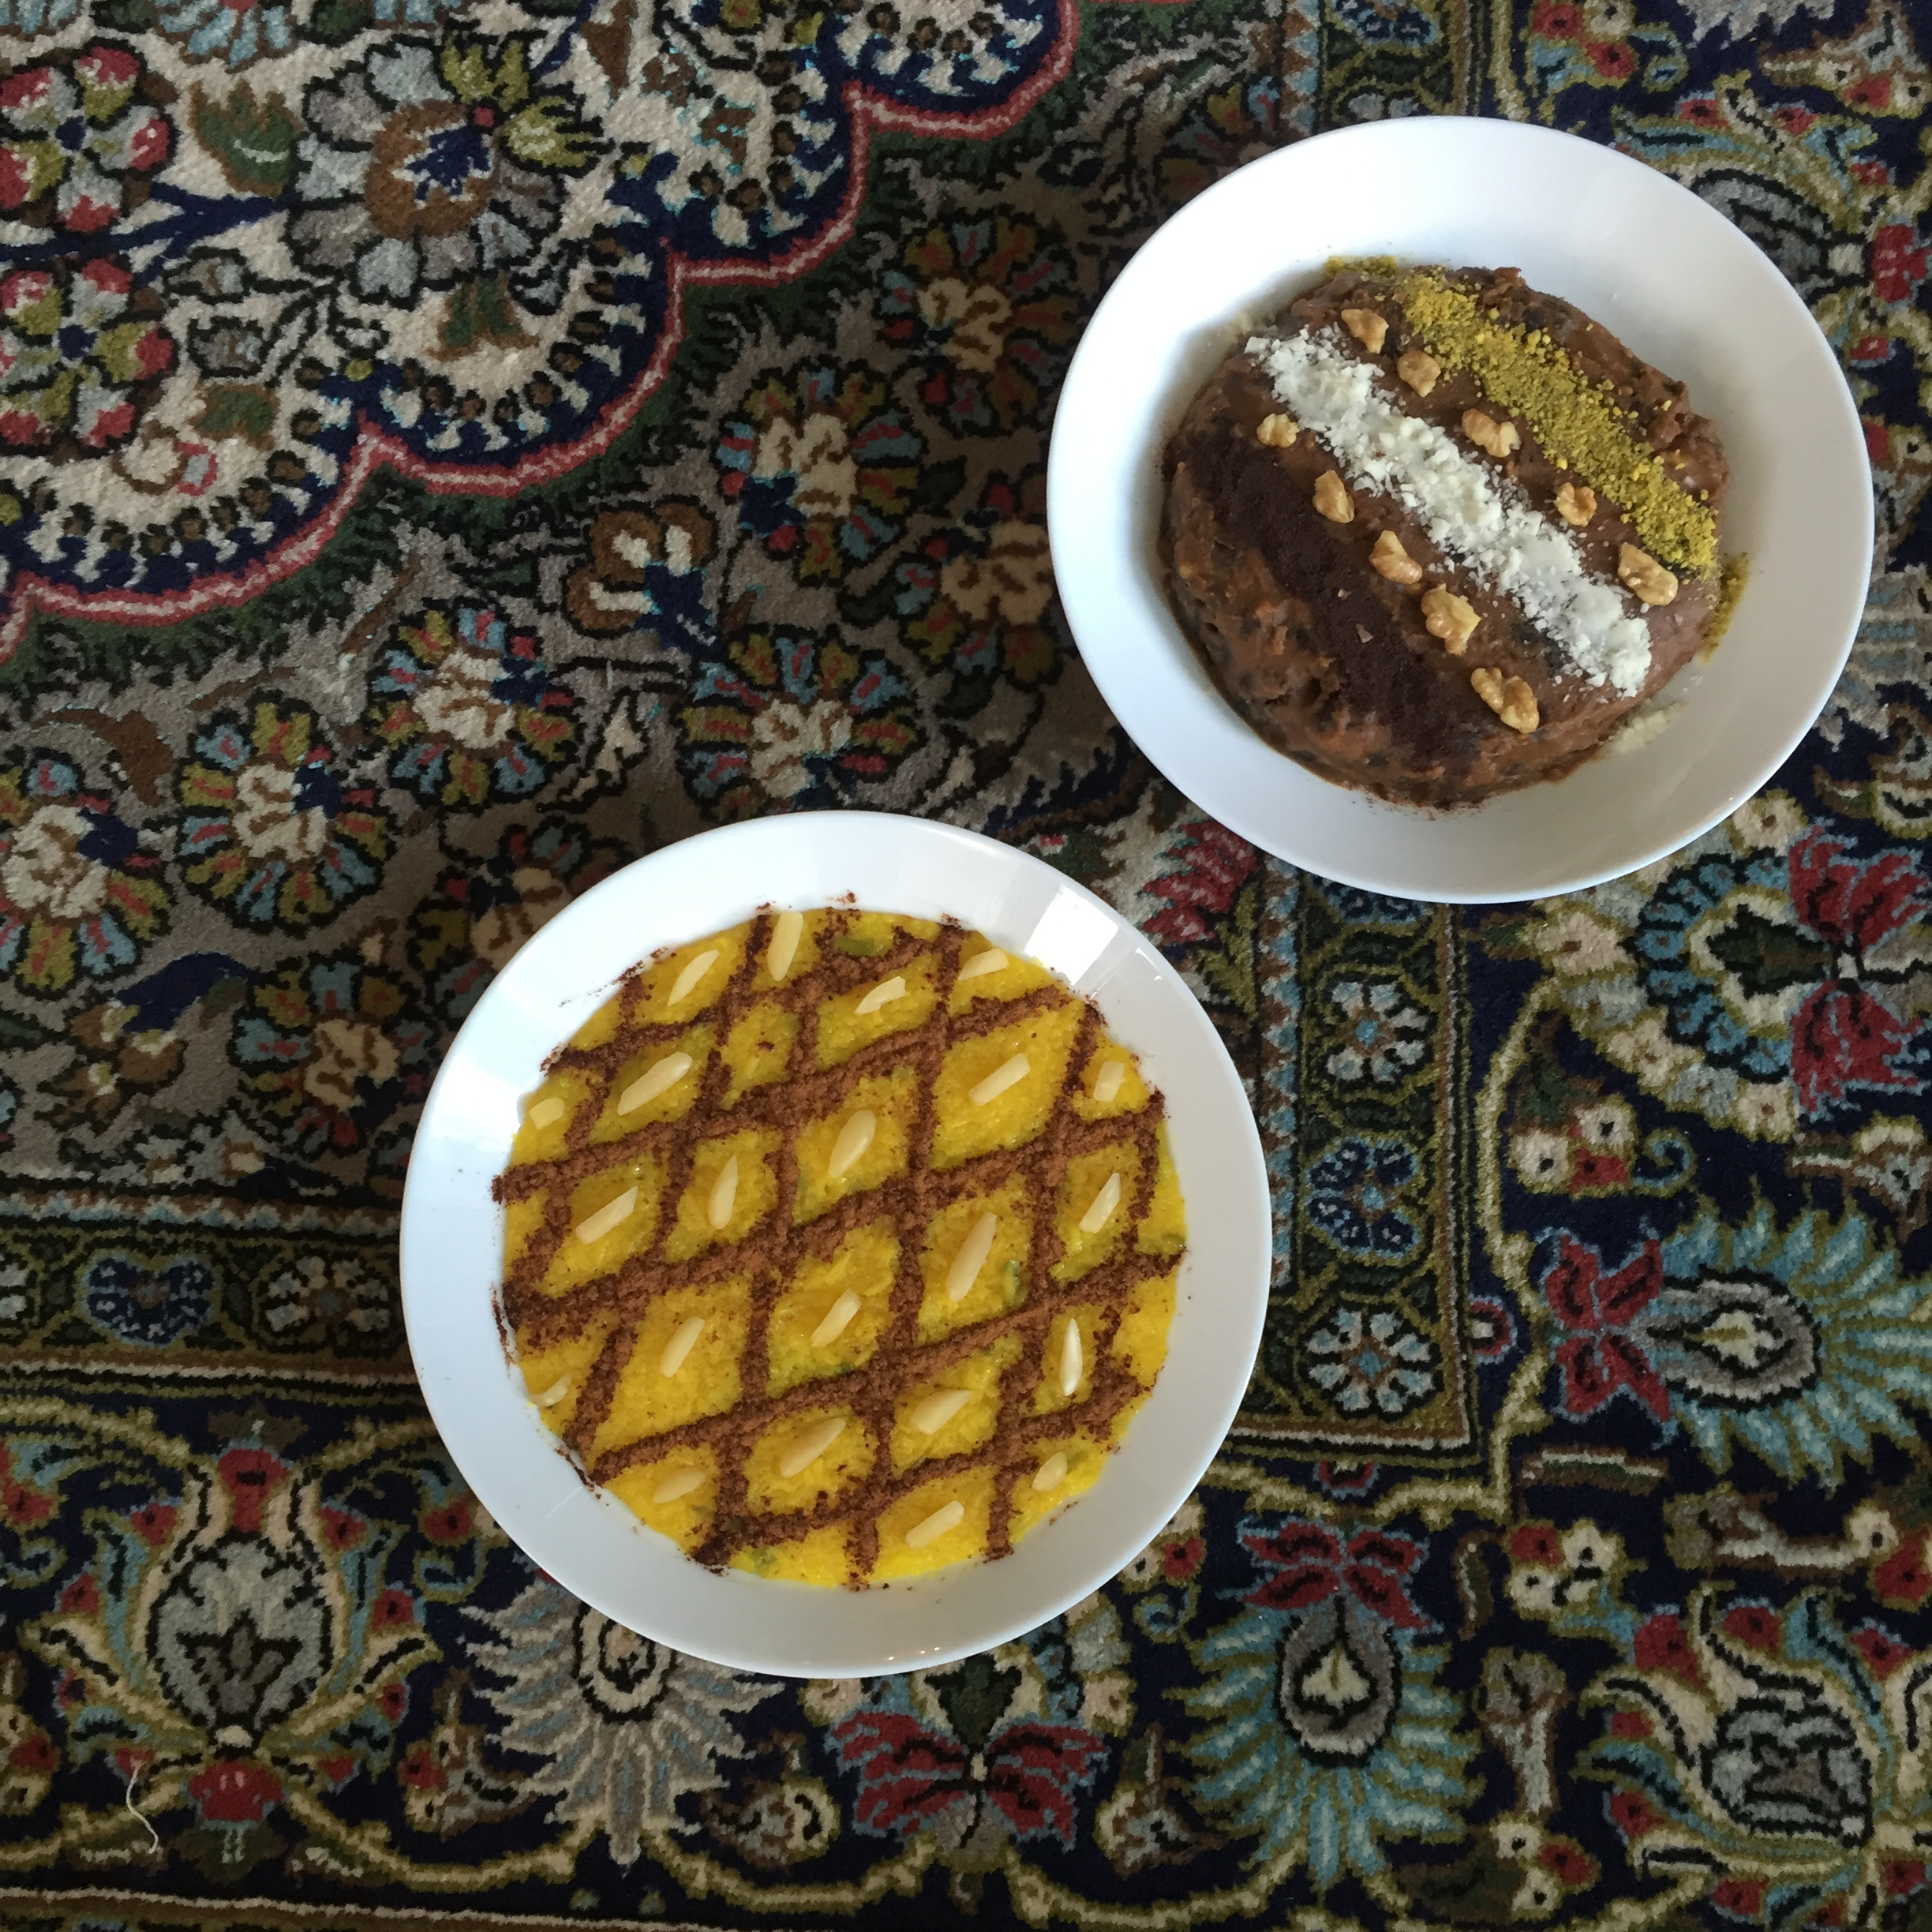 Top right ; Ranginak, a date and walnut pudding Bottom Sholehzard, saffron pudding. Both delicious desserts.